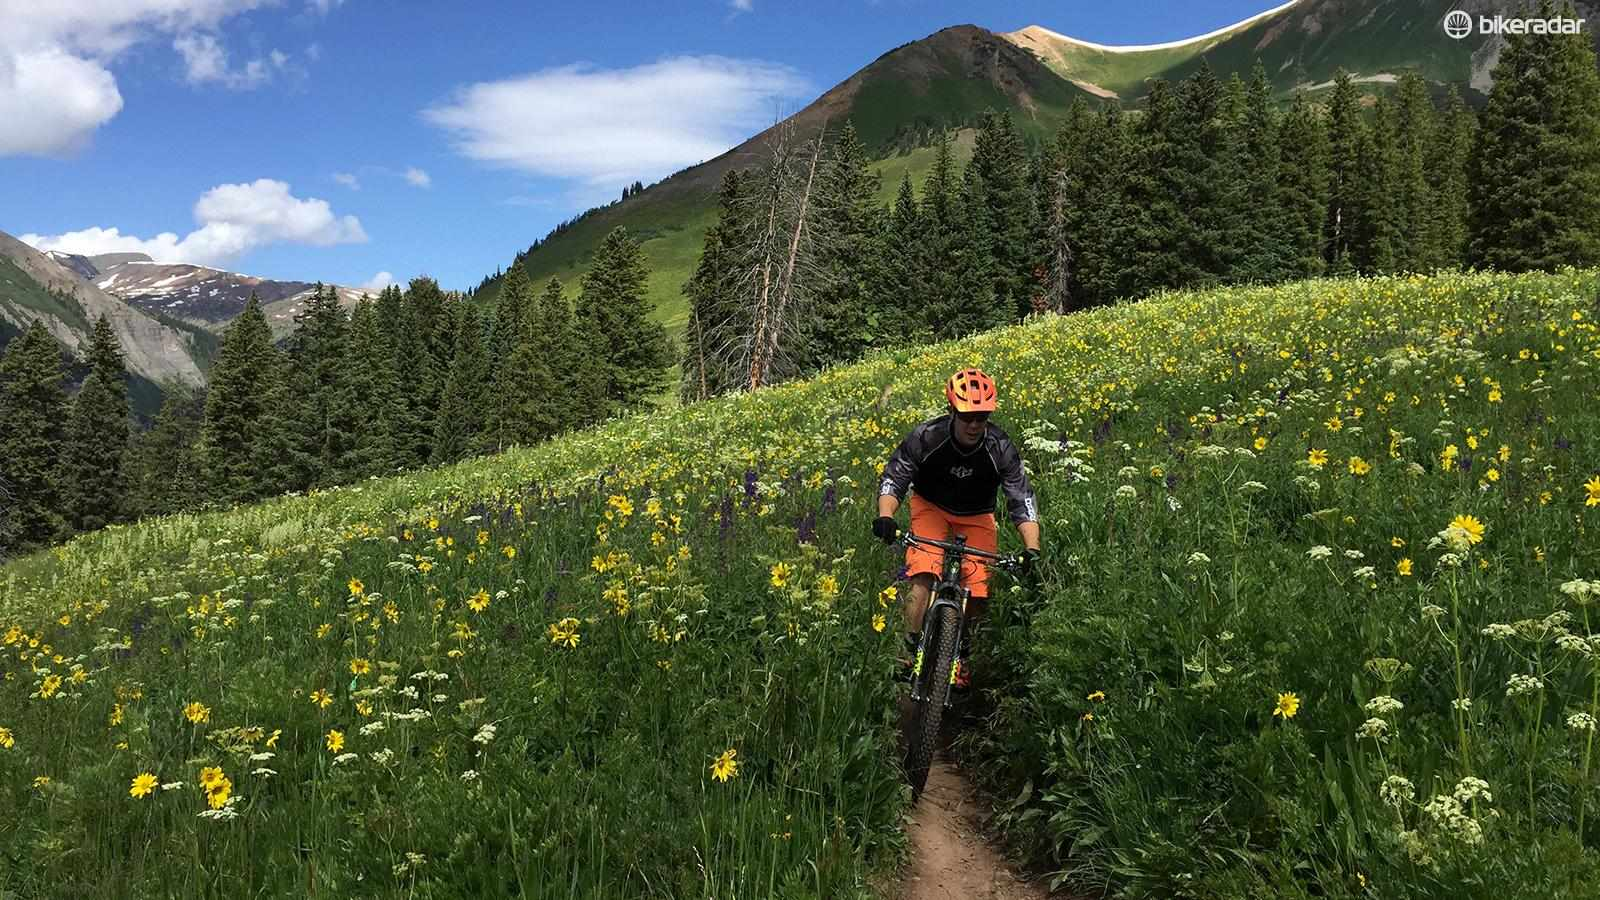 There's a good reason why we all love singletrack. You're only hurting yourself by cutting corners and creating your own lines